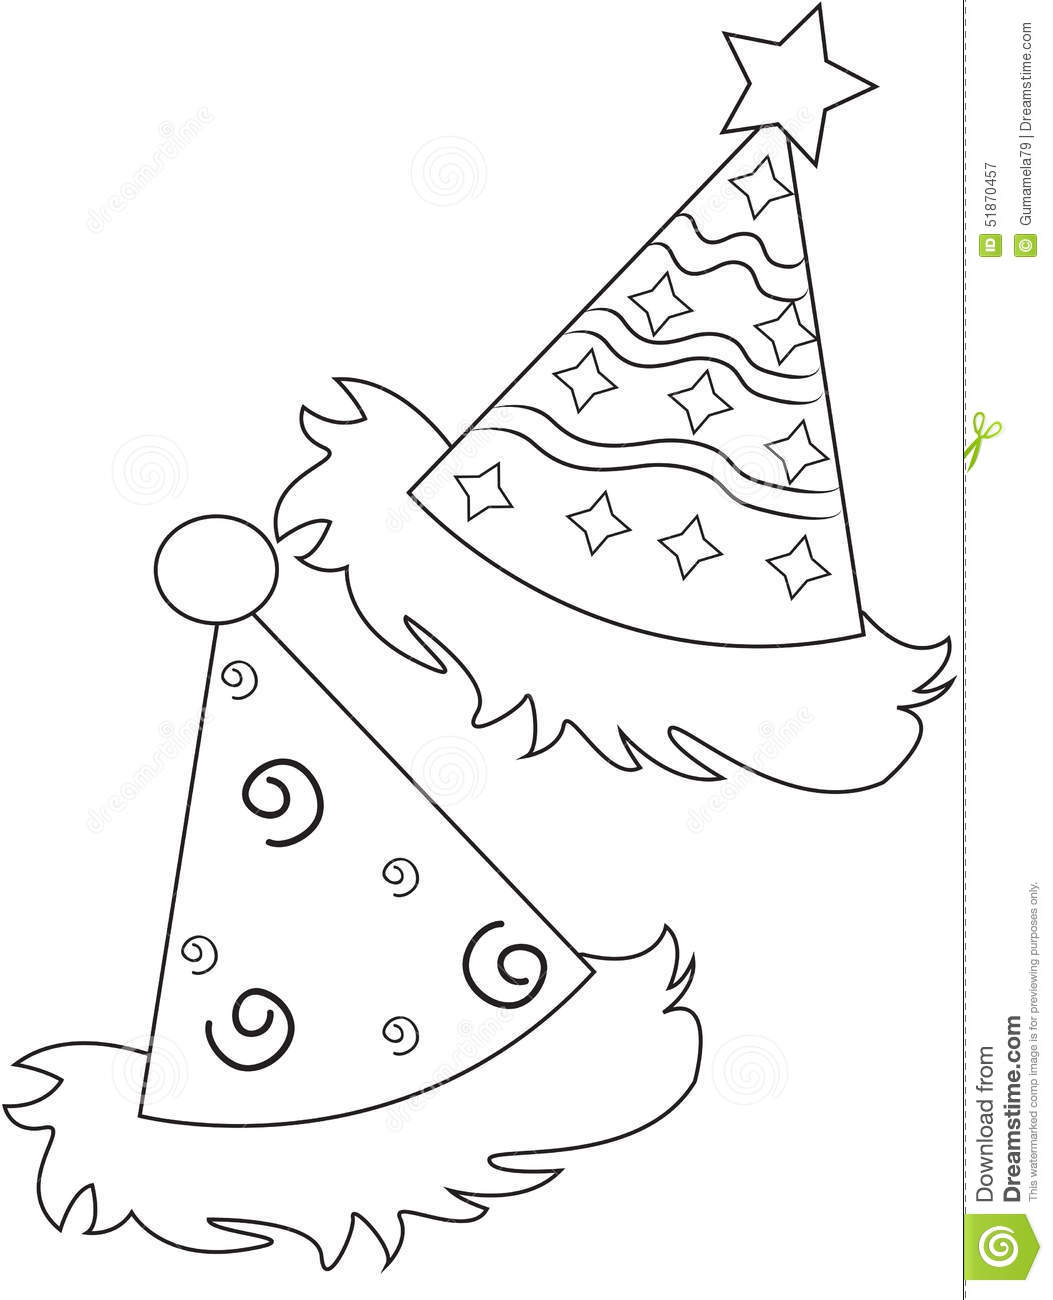 Party Hats Coloring Page Stock Illustration